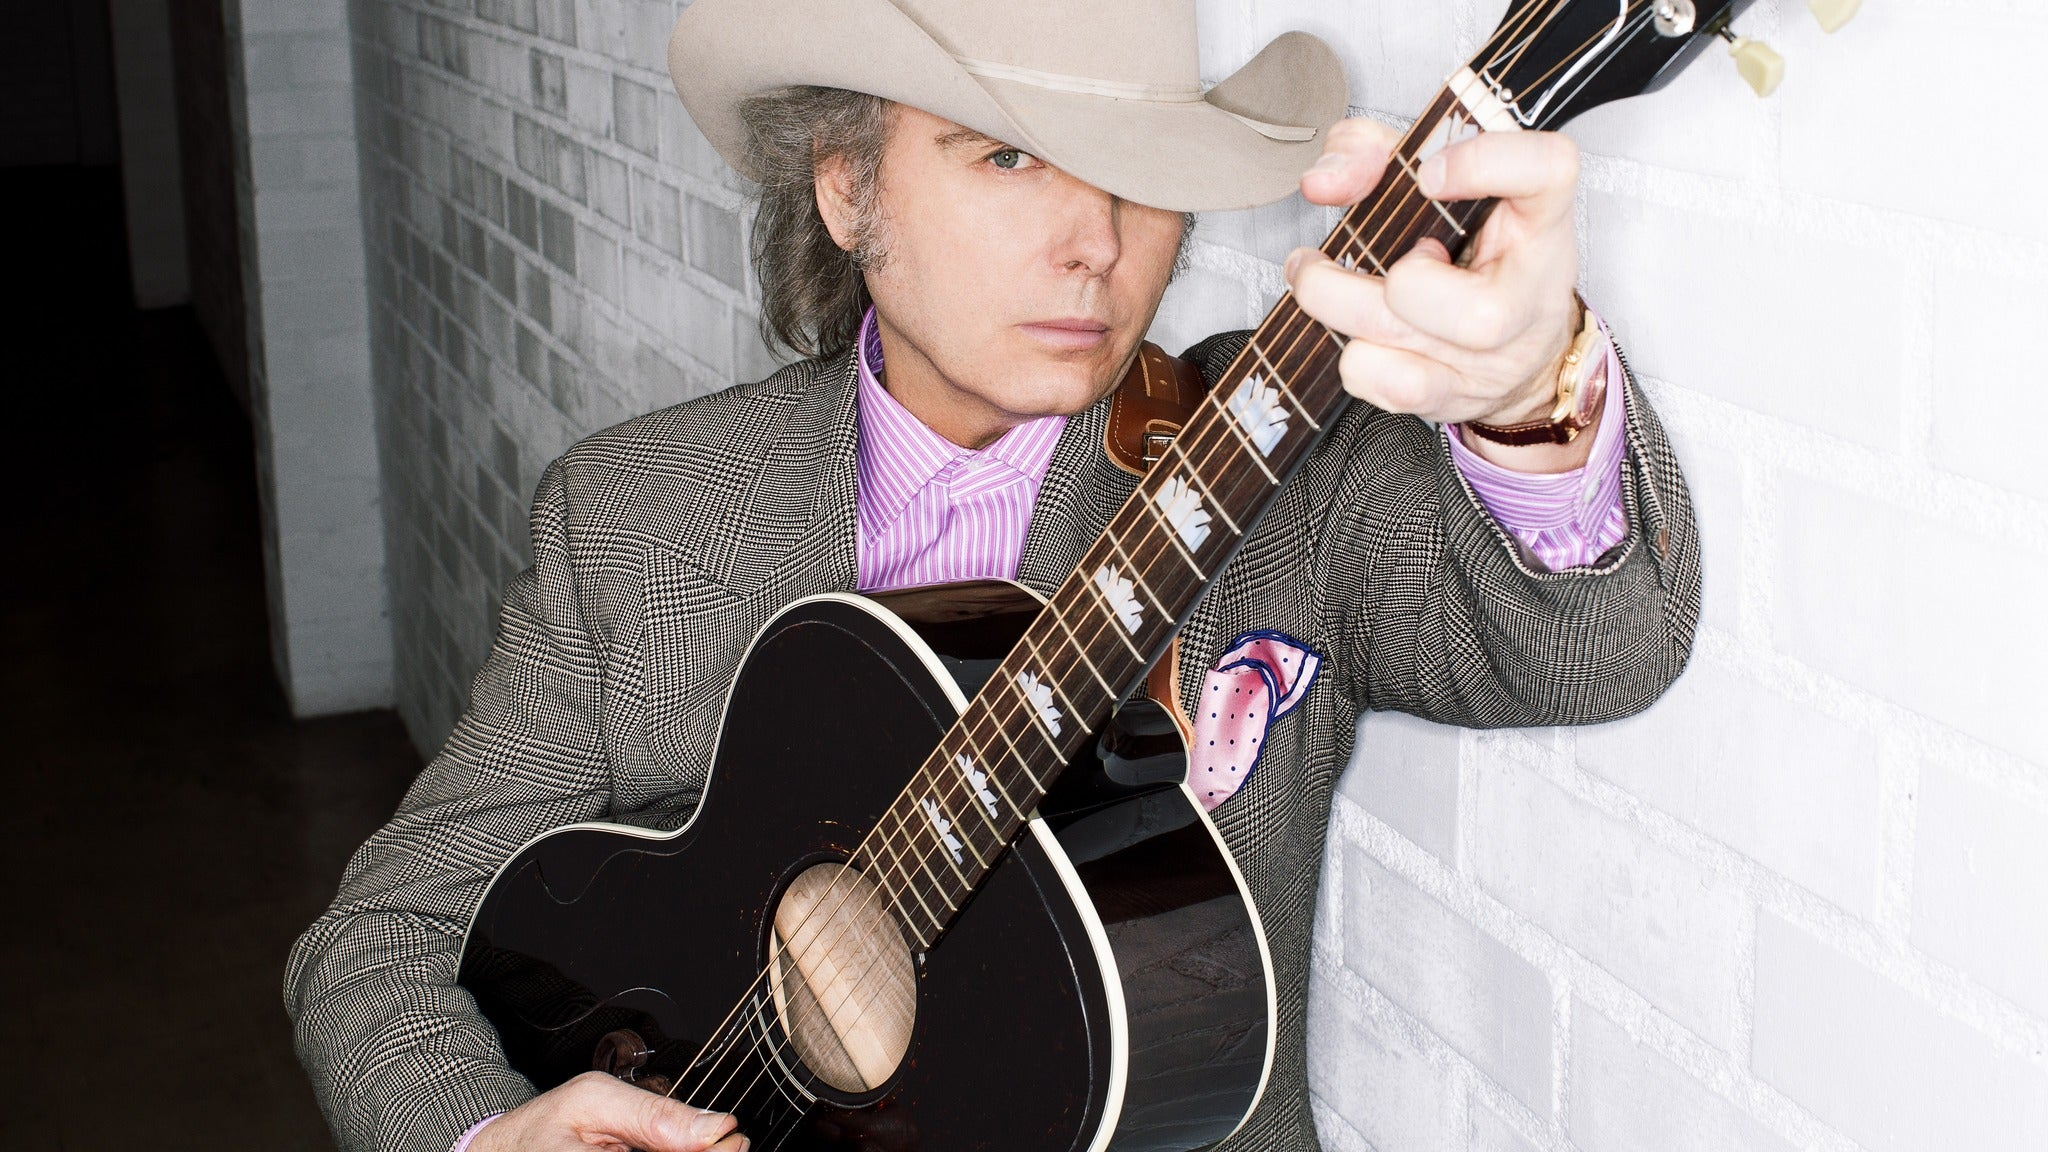 Dwight Yoakam at Wente Vineyards - Livermore, CA 94550